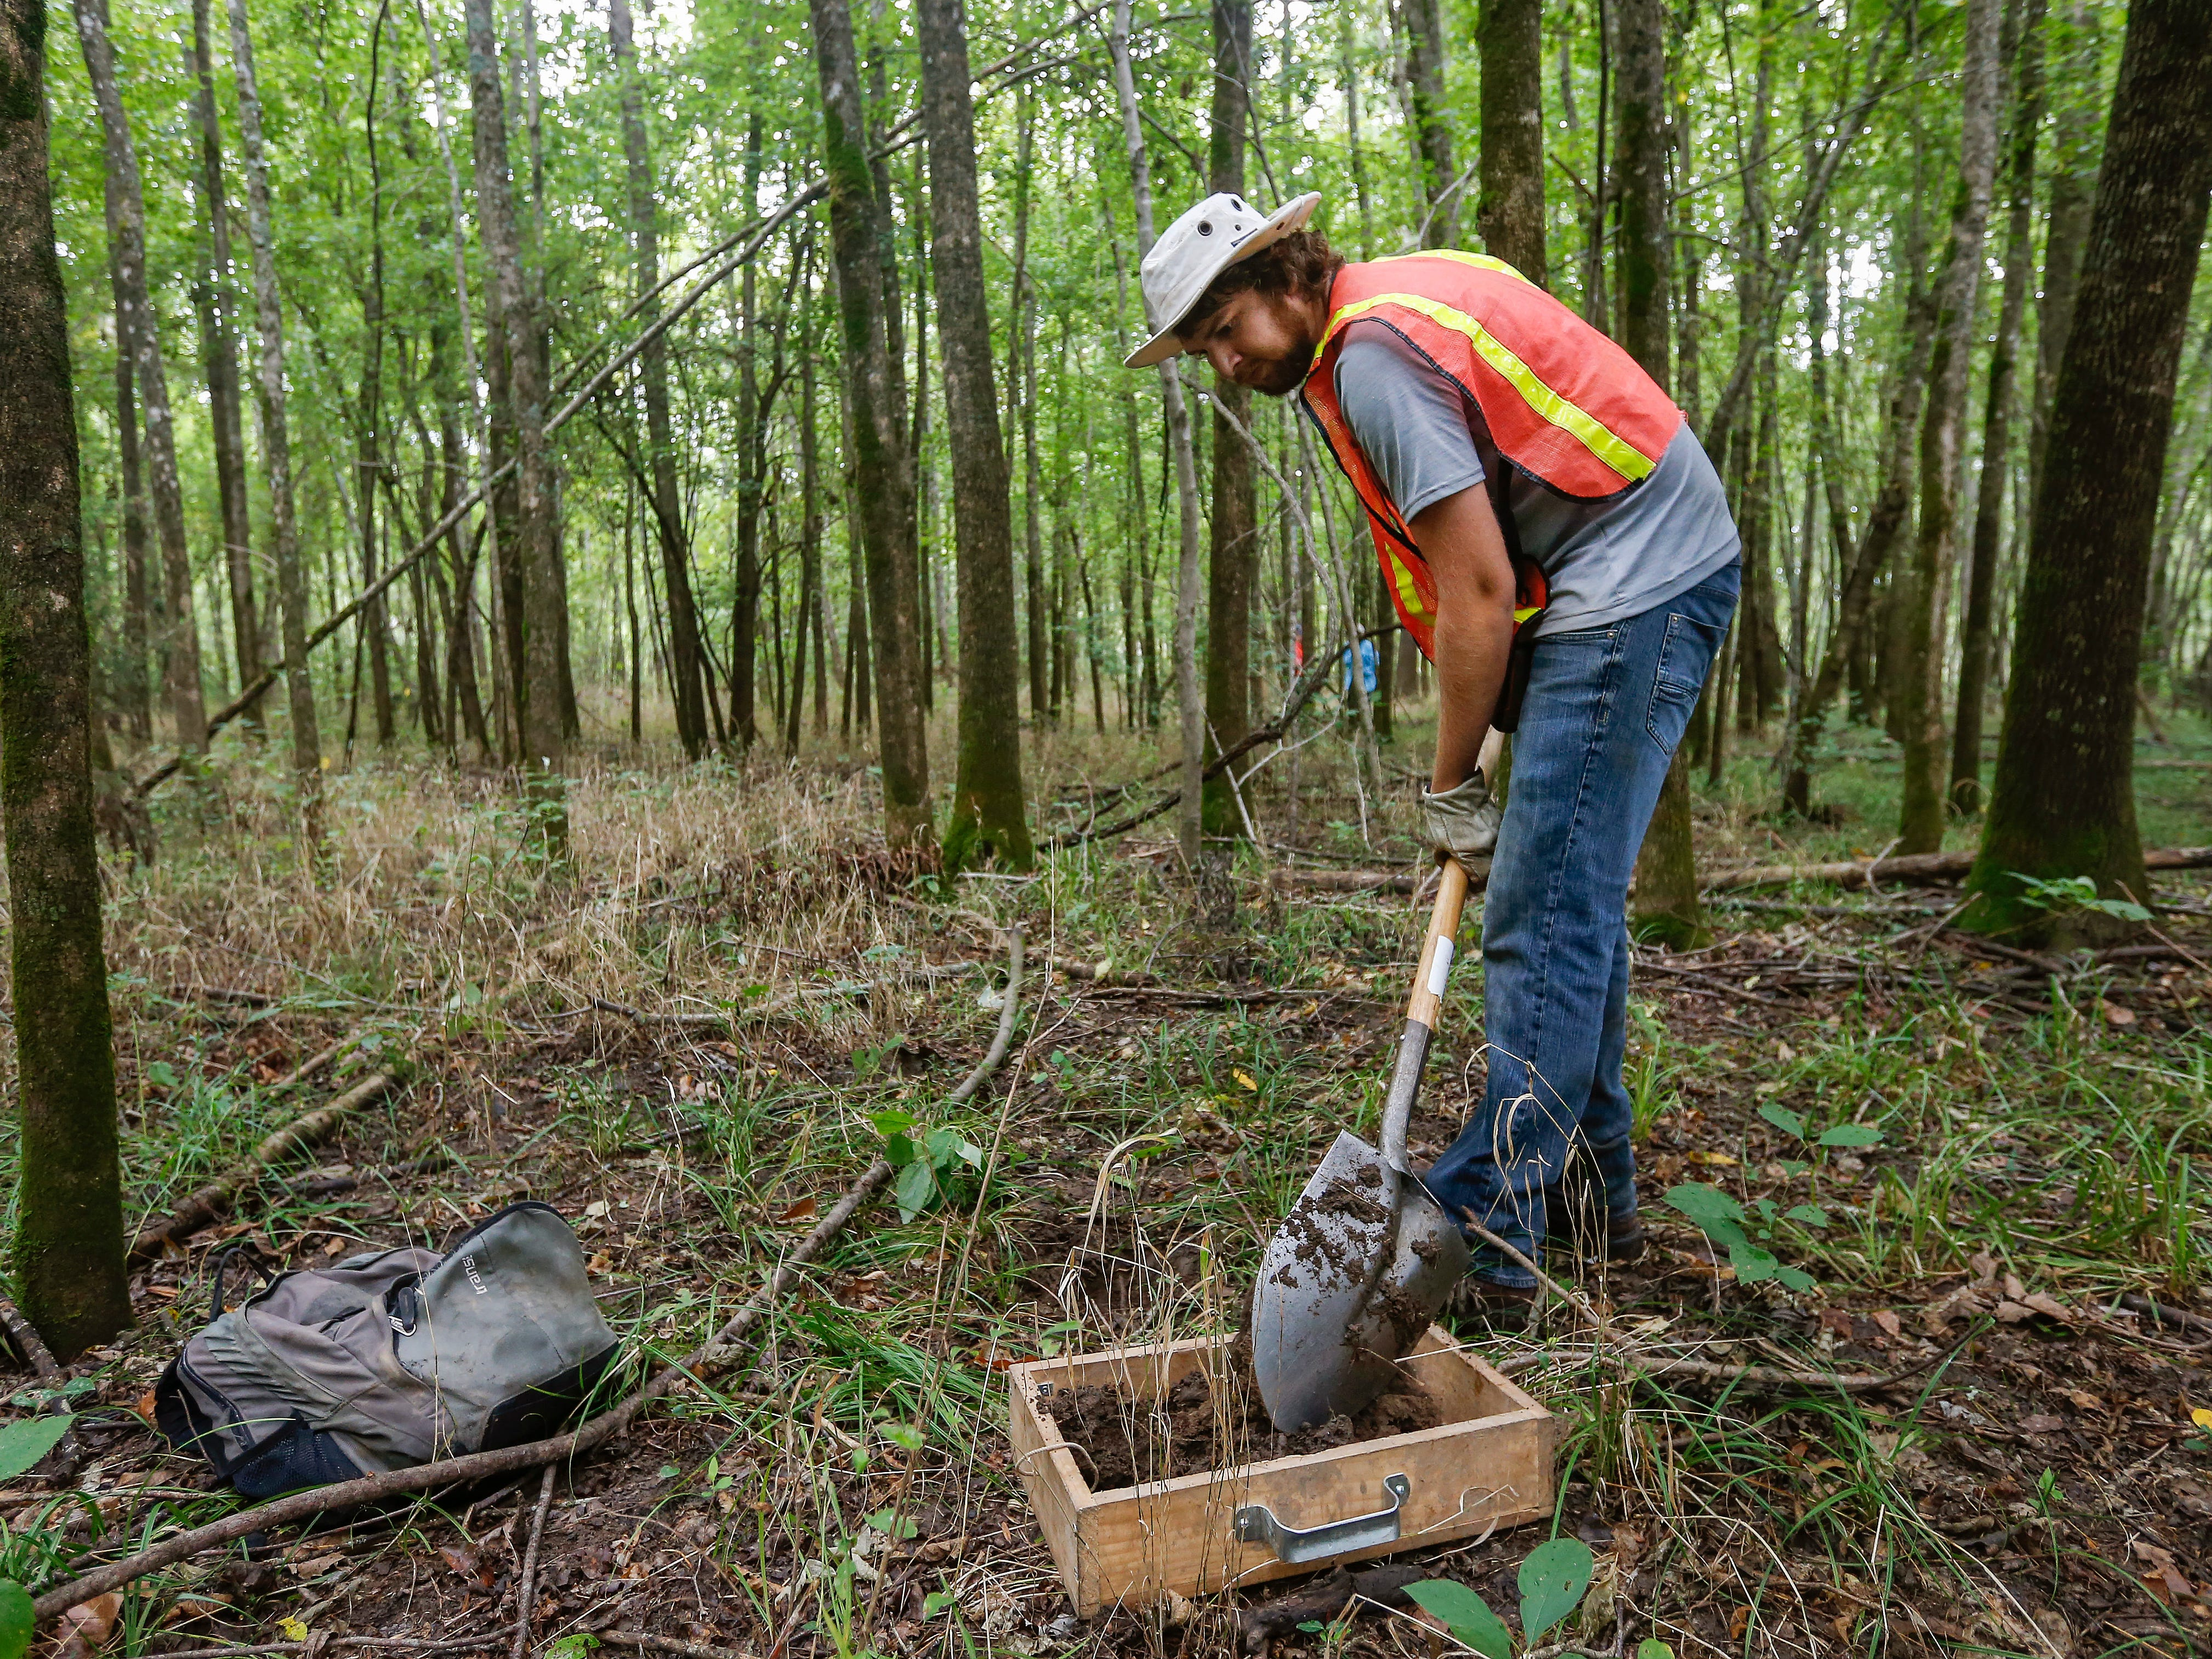 Field technician Alex Koch shovels dirt into a sifting screen at a survey site along Lake Taneycomo on Thursday, Aug. 30, 2018.